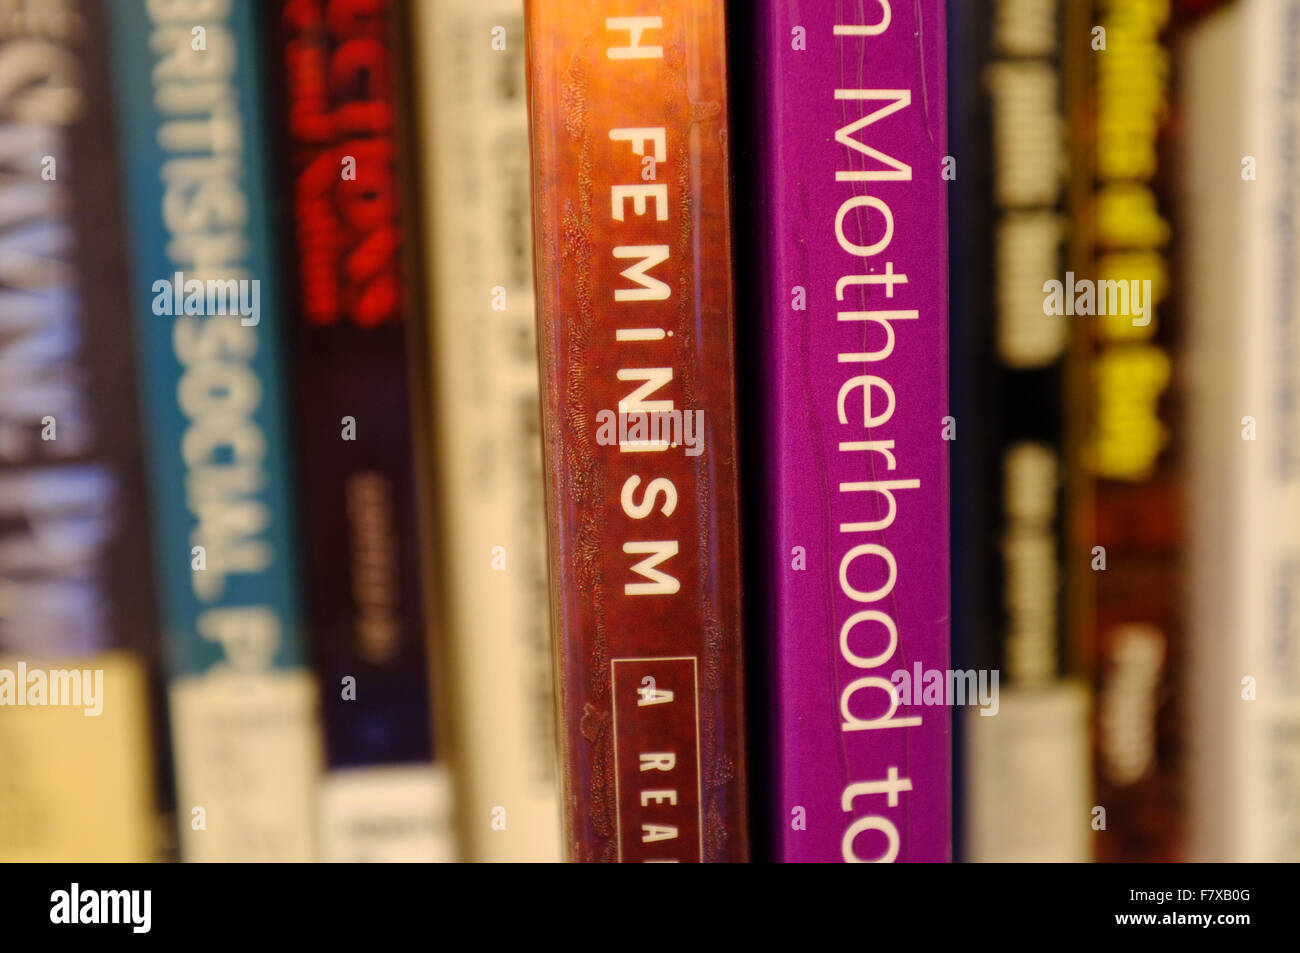 The spines of Feminism and Motherhood books pulled out on a bookshelf. - Stock Image